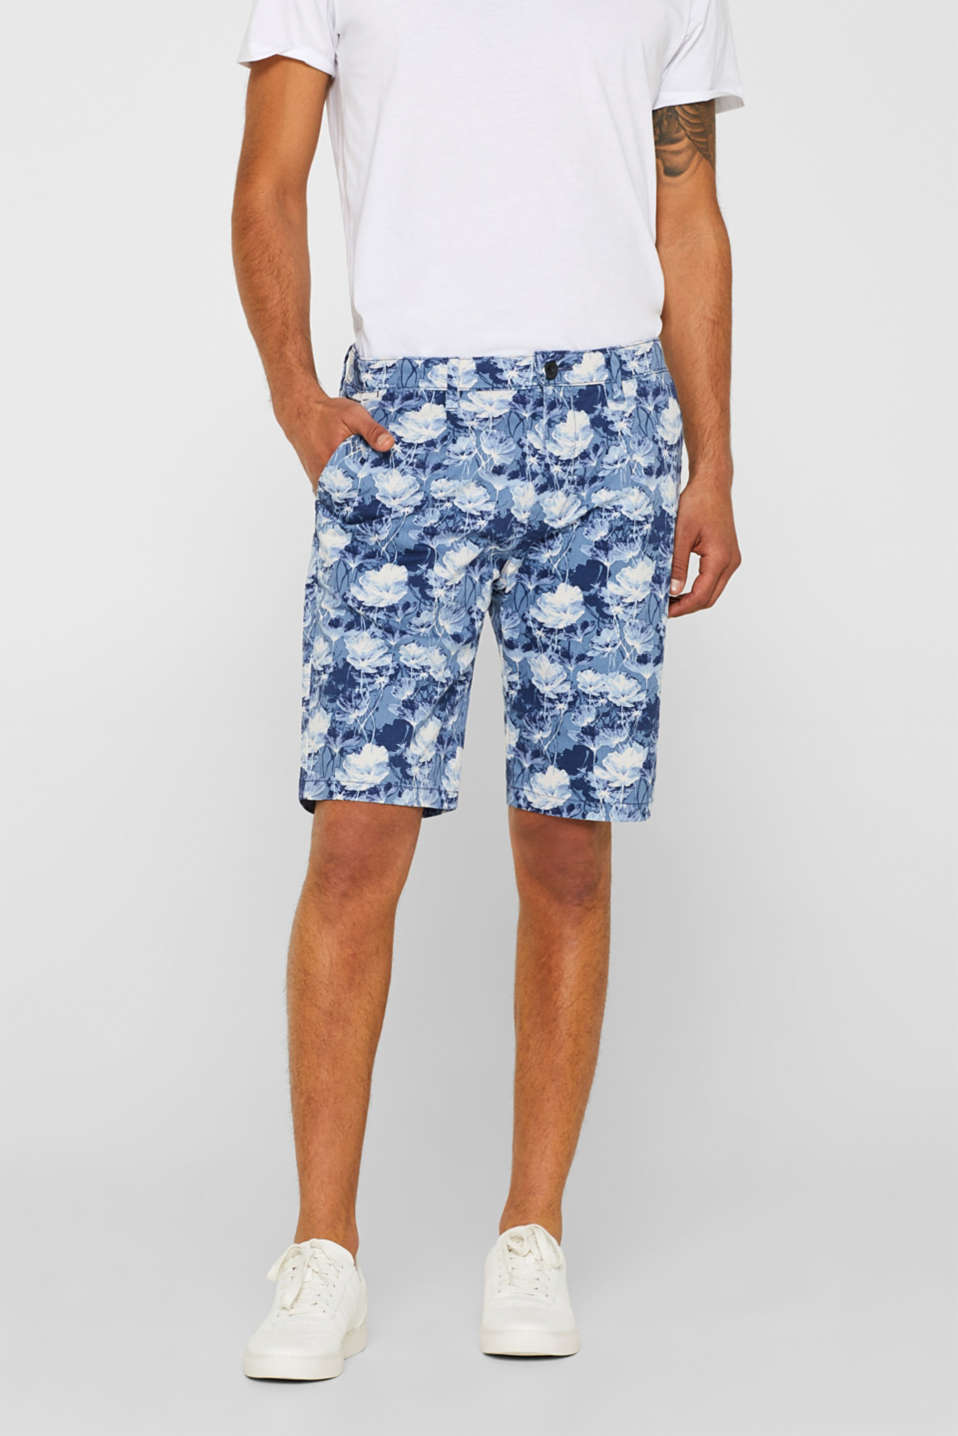 Esprit - Shorts with a floral print, made of stretch cotton